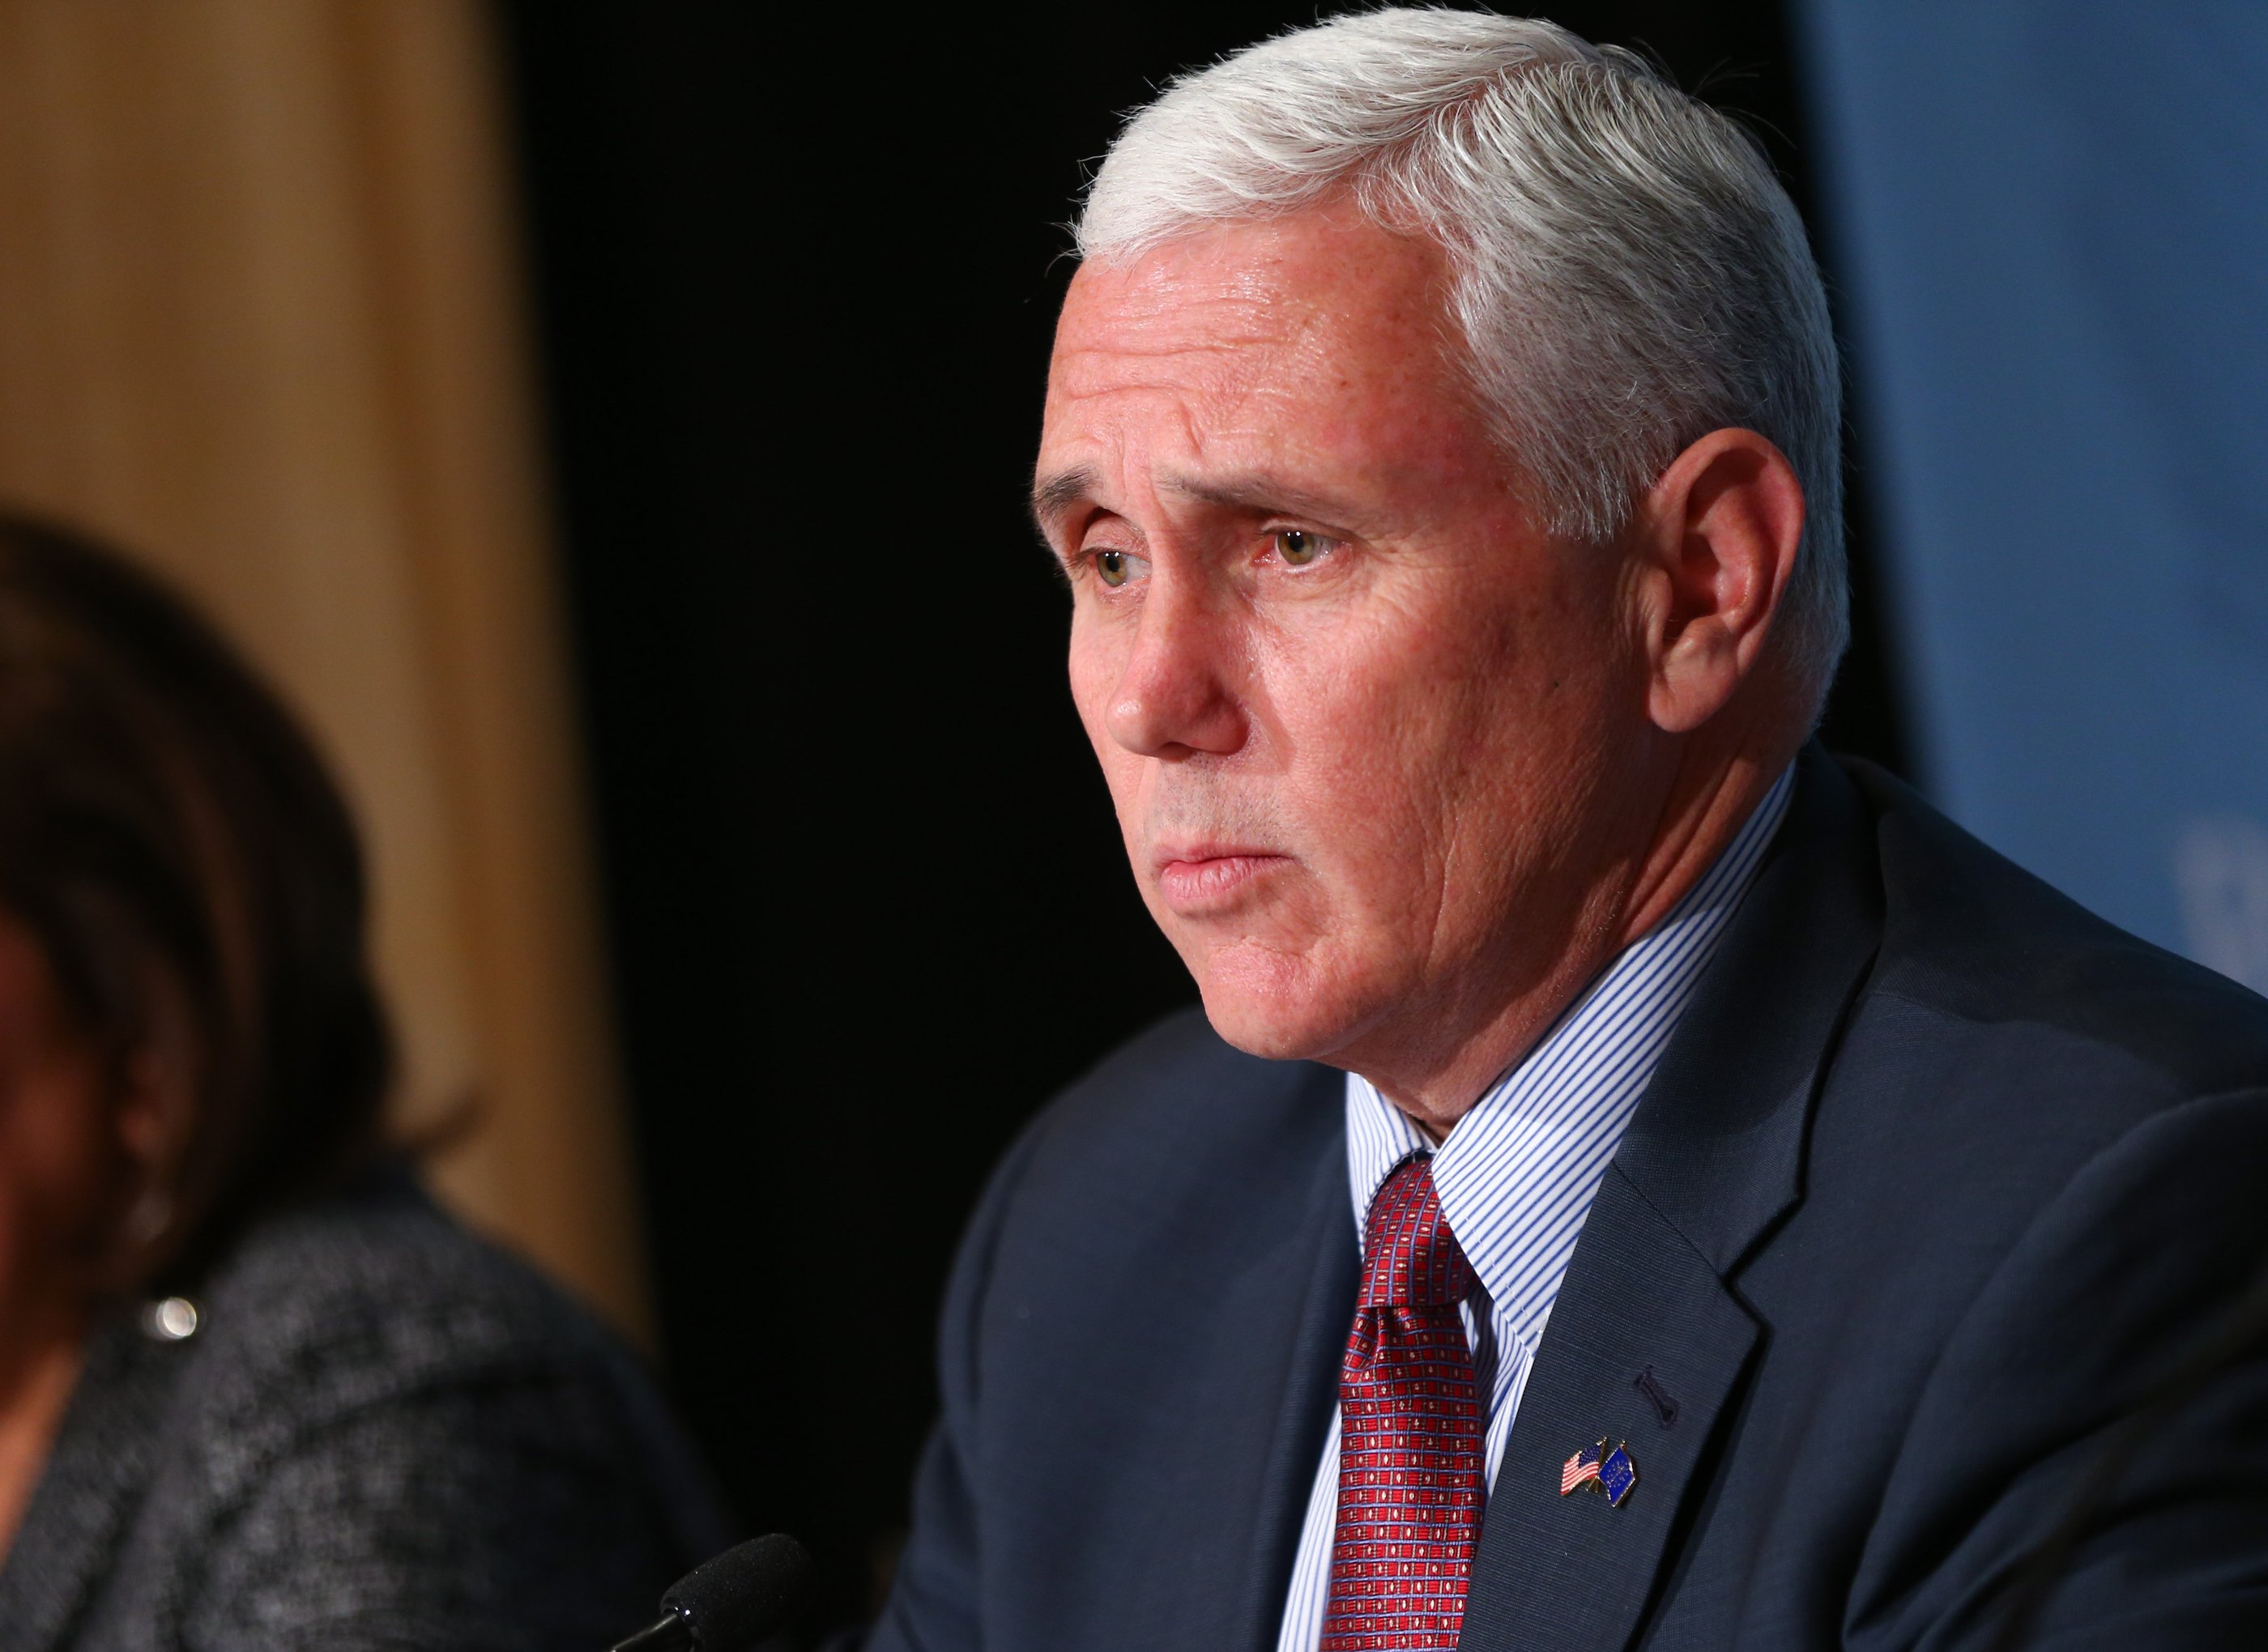 Indiana Gov. Mike Pence speaks during a news conference at the Republican Governors Association annual conference in Las Vegas on Nov. 18, 2015.